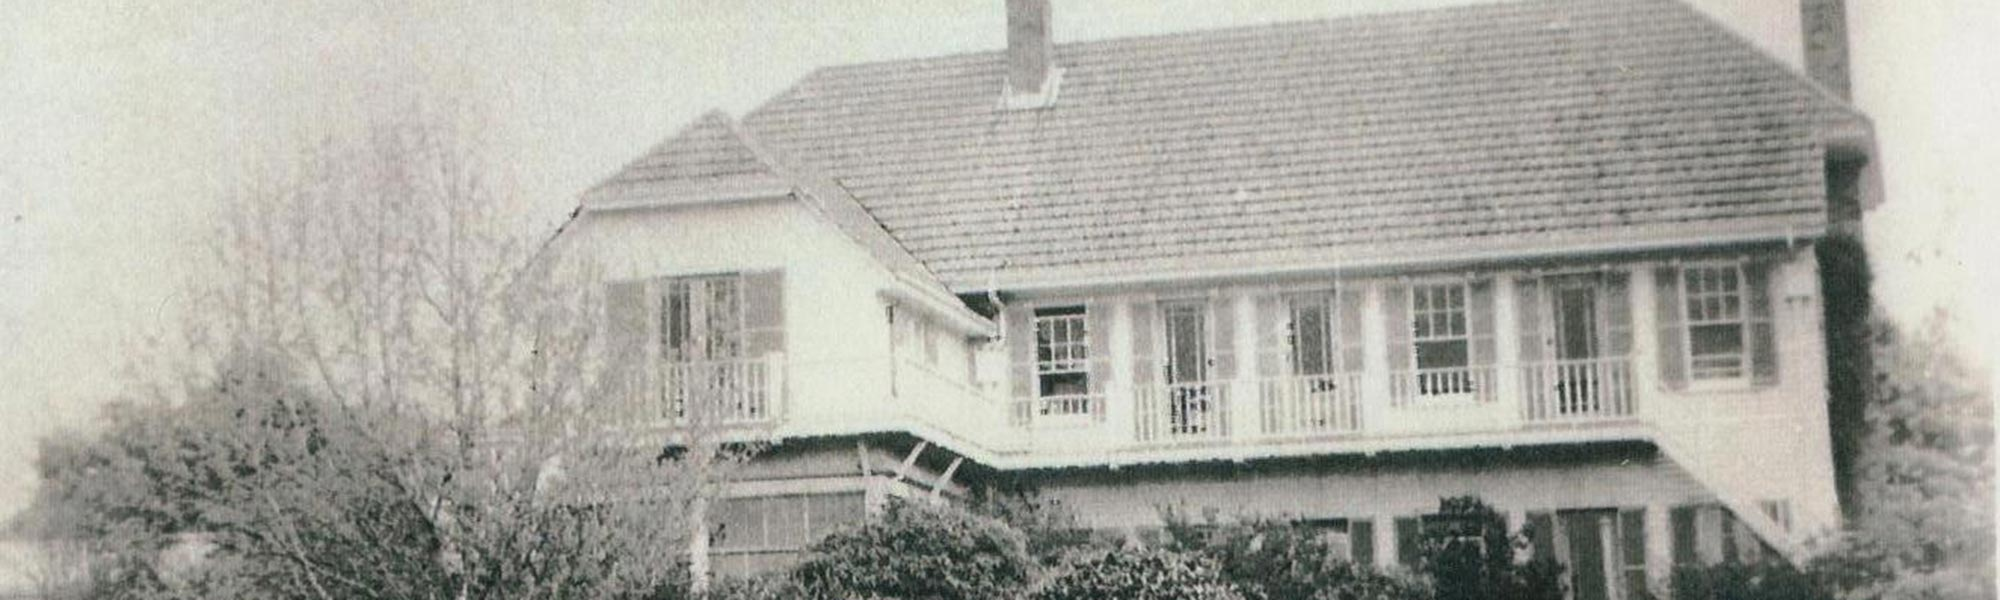 Saint-Kentigern-Girls'-School-Corran-House.jpg